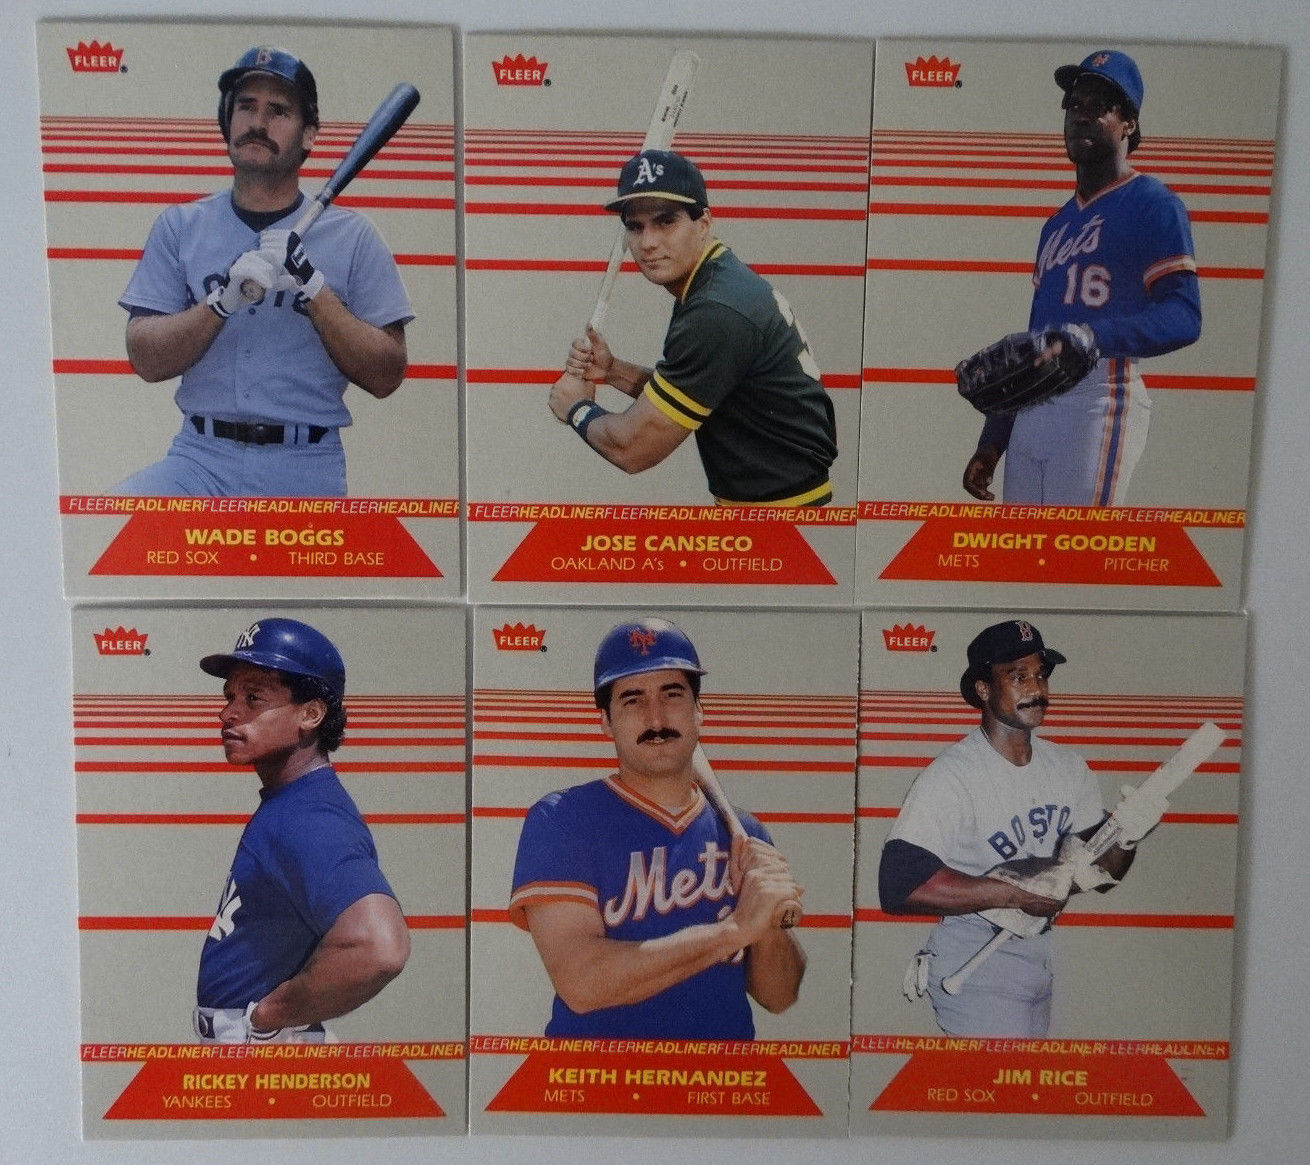 1987 Fleer Headliners Inserts Set of 6 Baseball Cards image 1